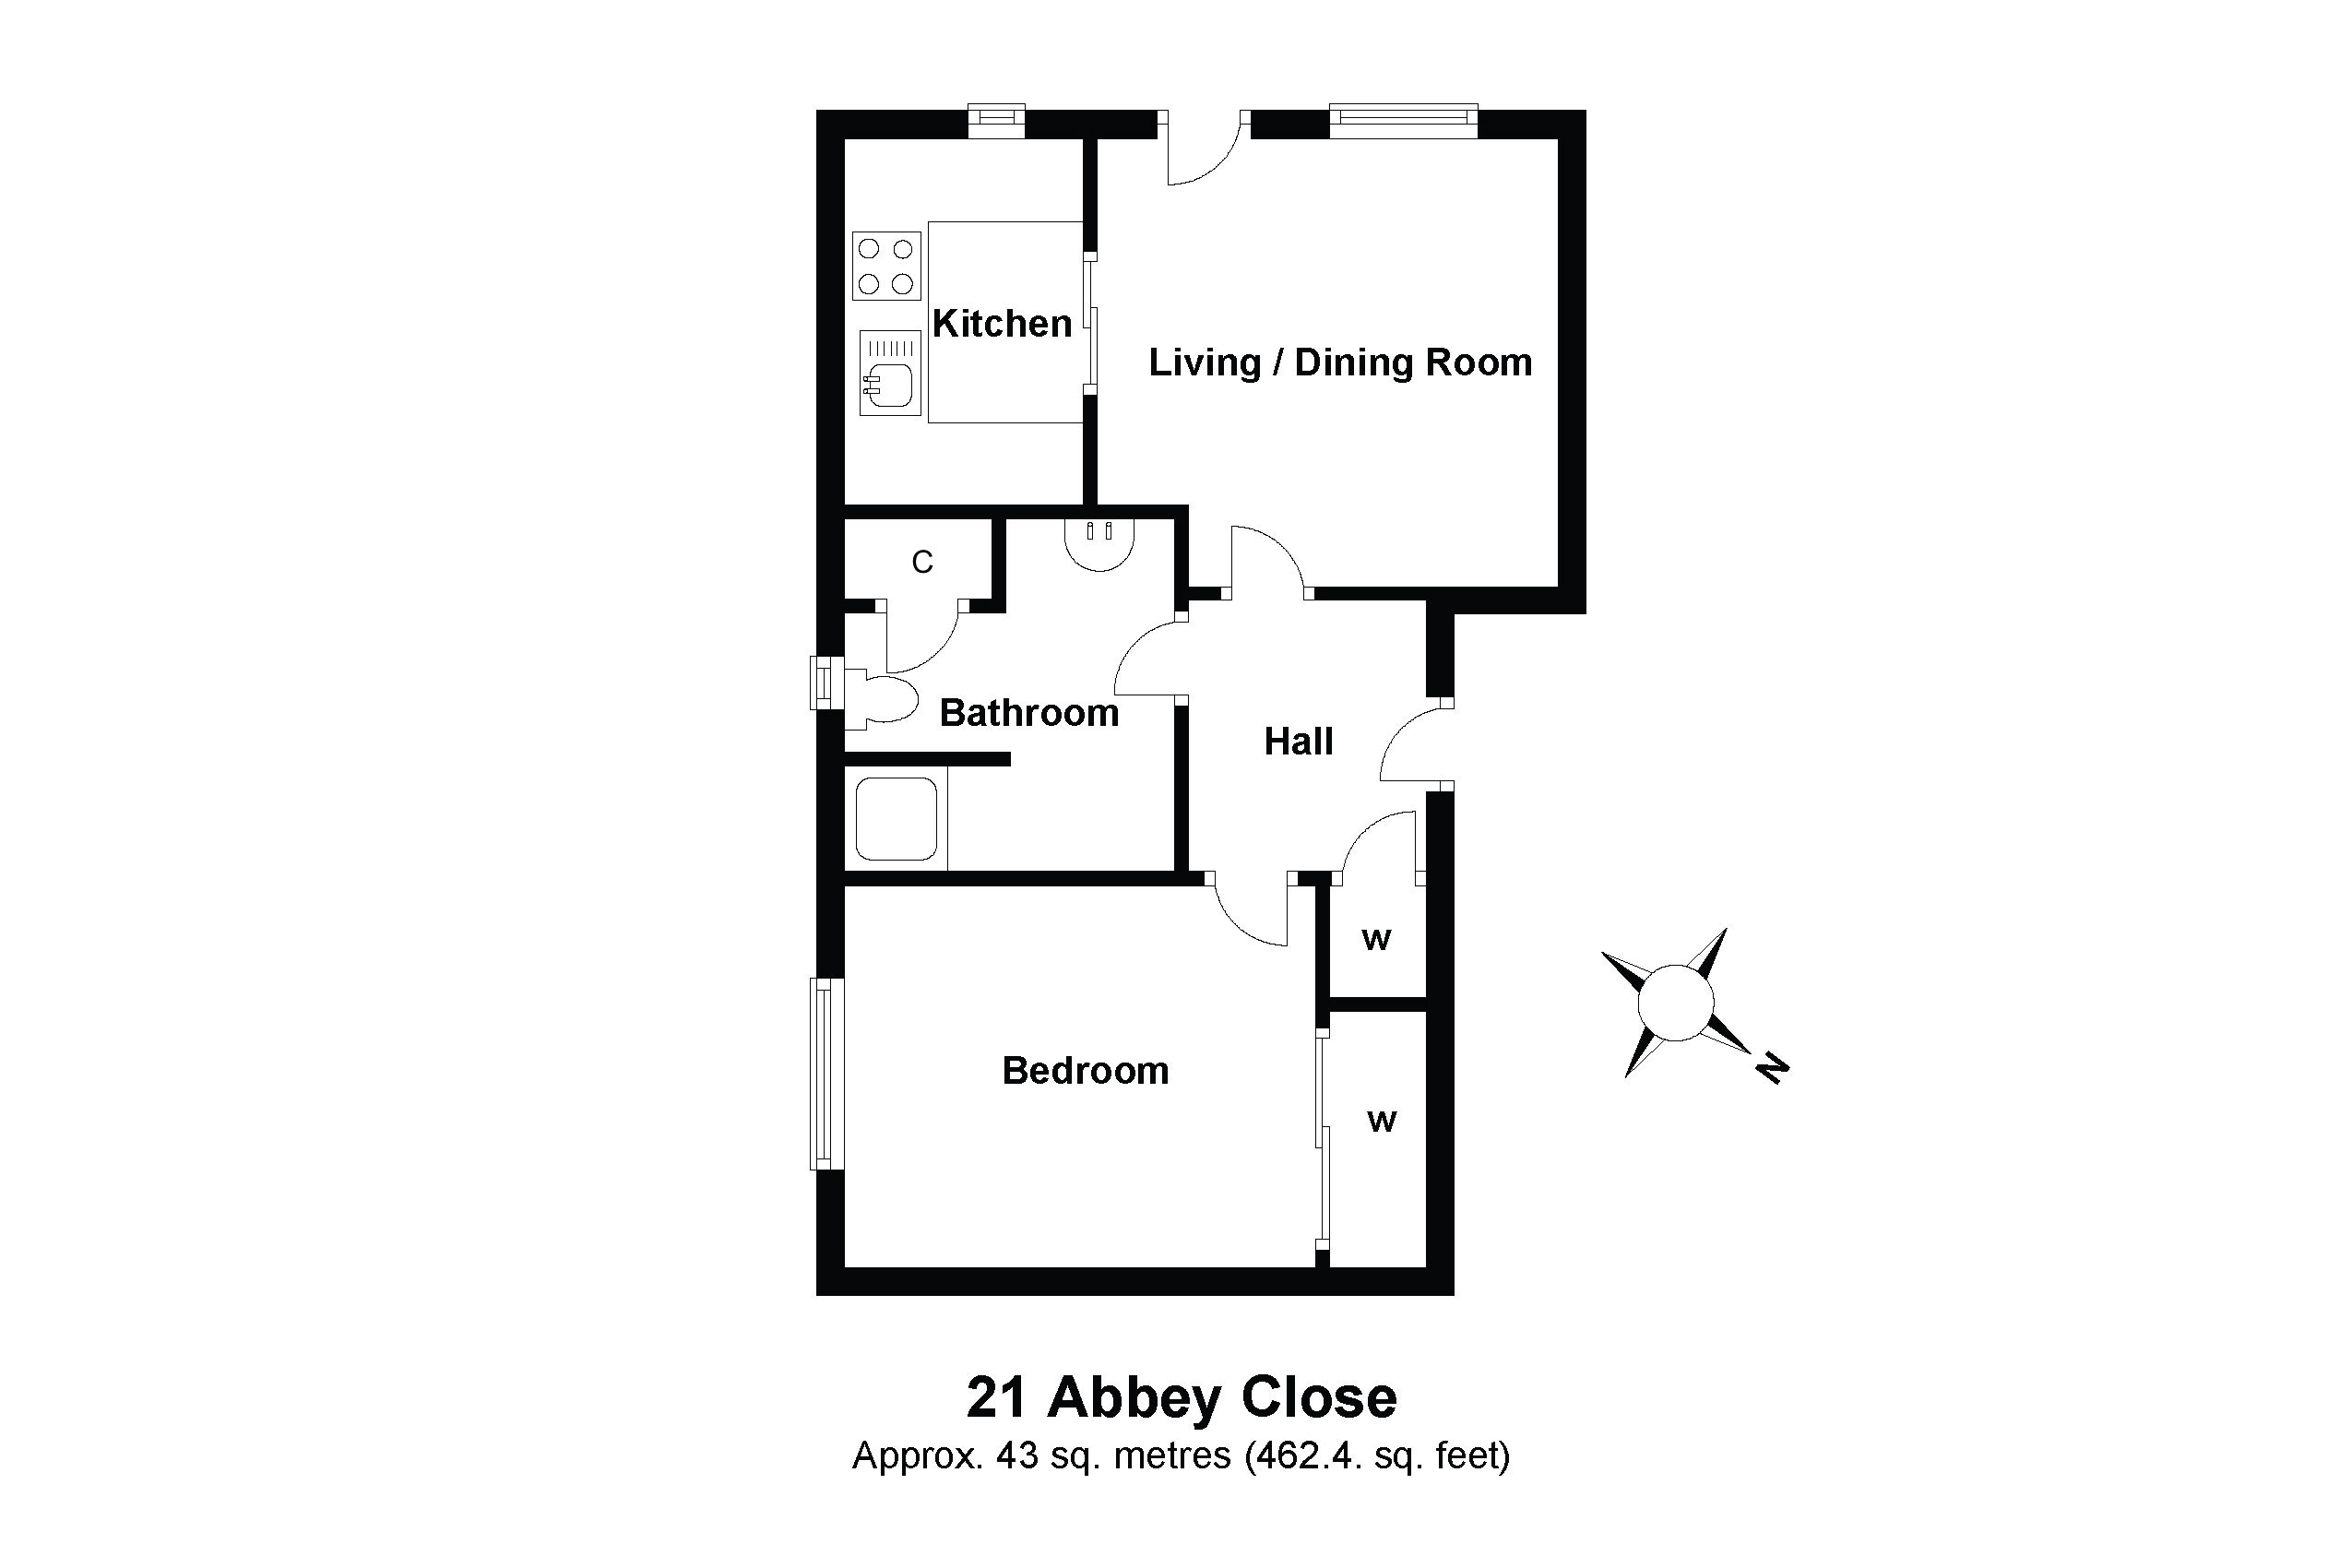 21 Abbey Close Floorplan